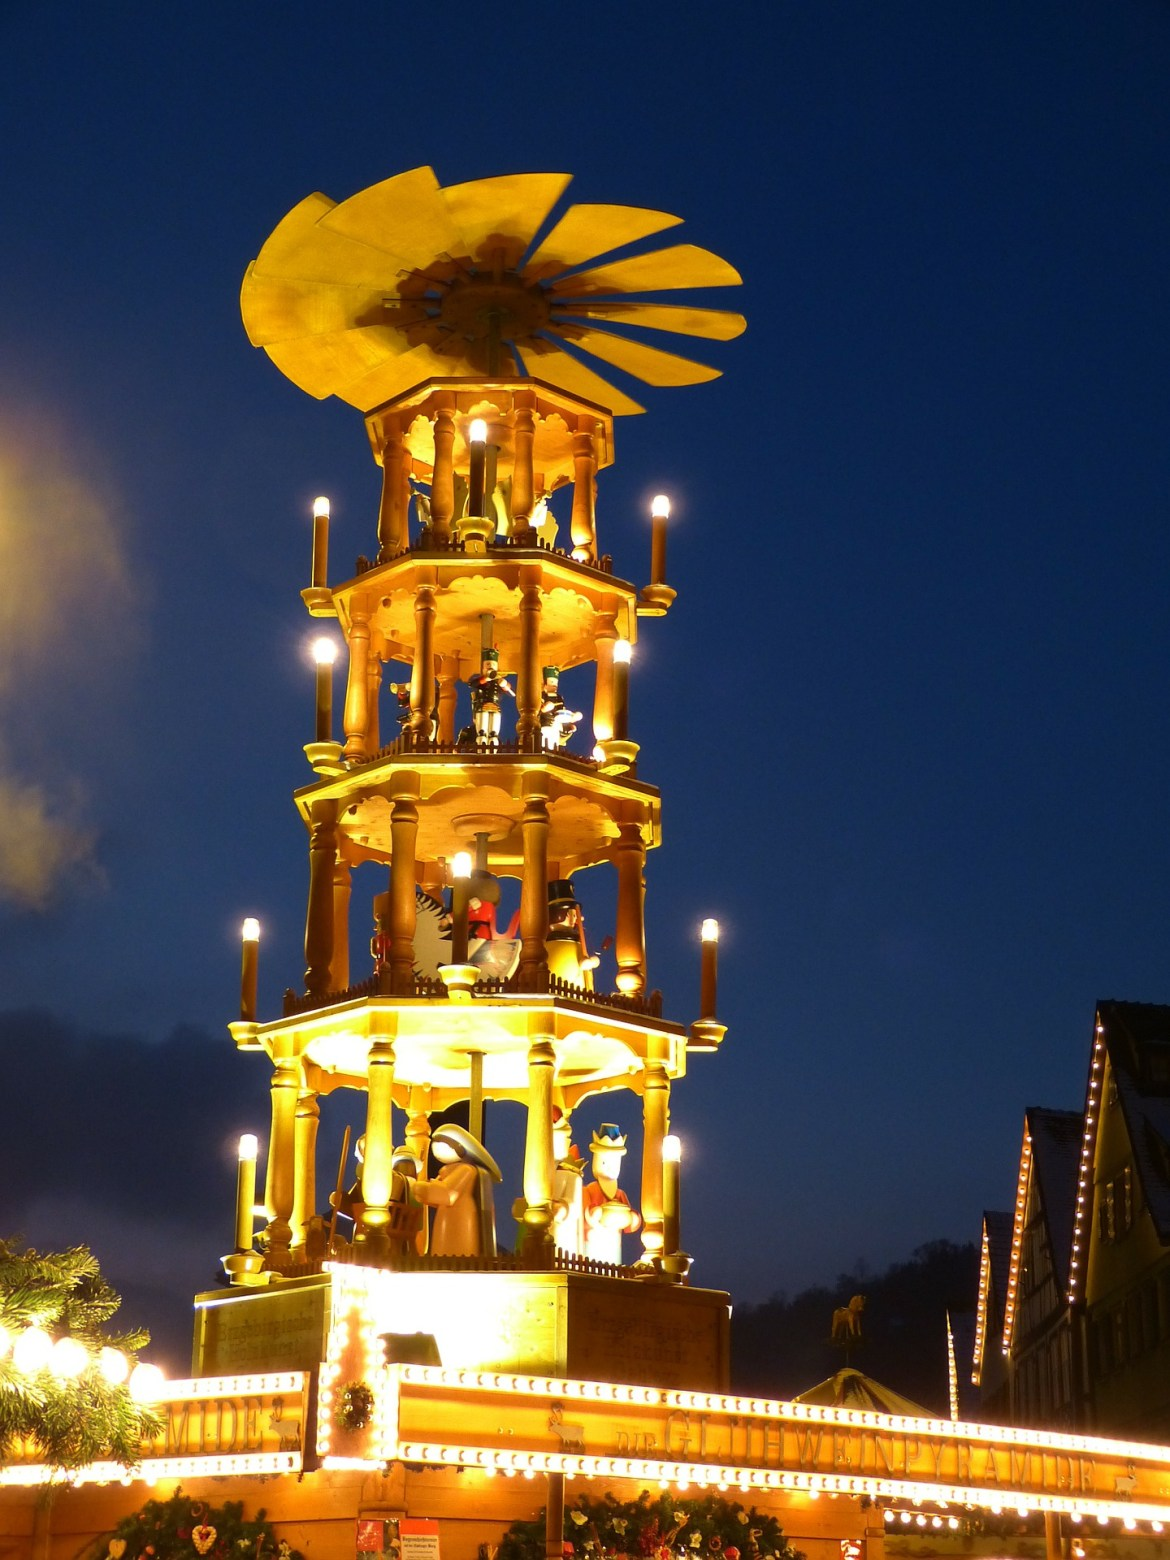 The highlight of the Dresden market is the Christmas pyramid, which stretches over 45 feet, and the world's biggest nutcracker.